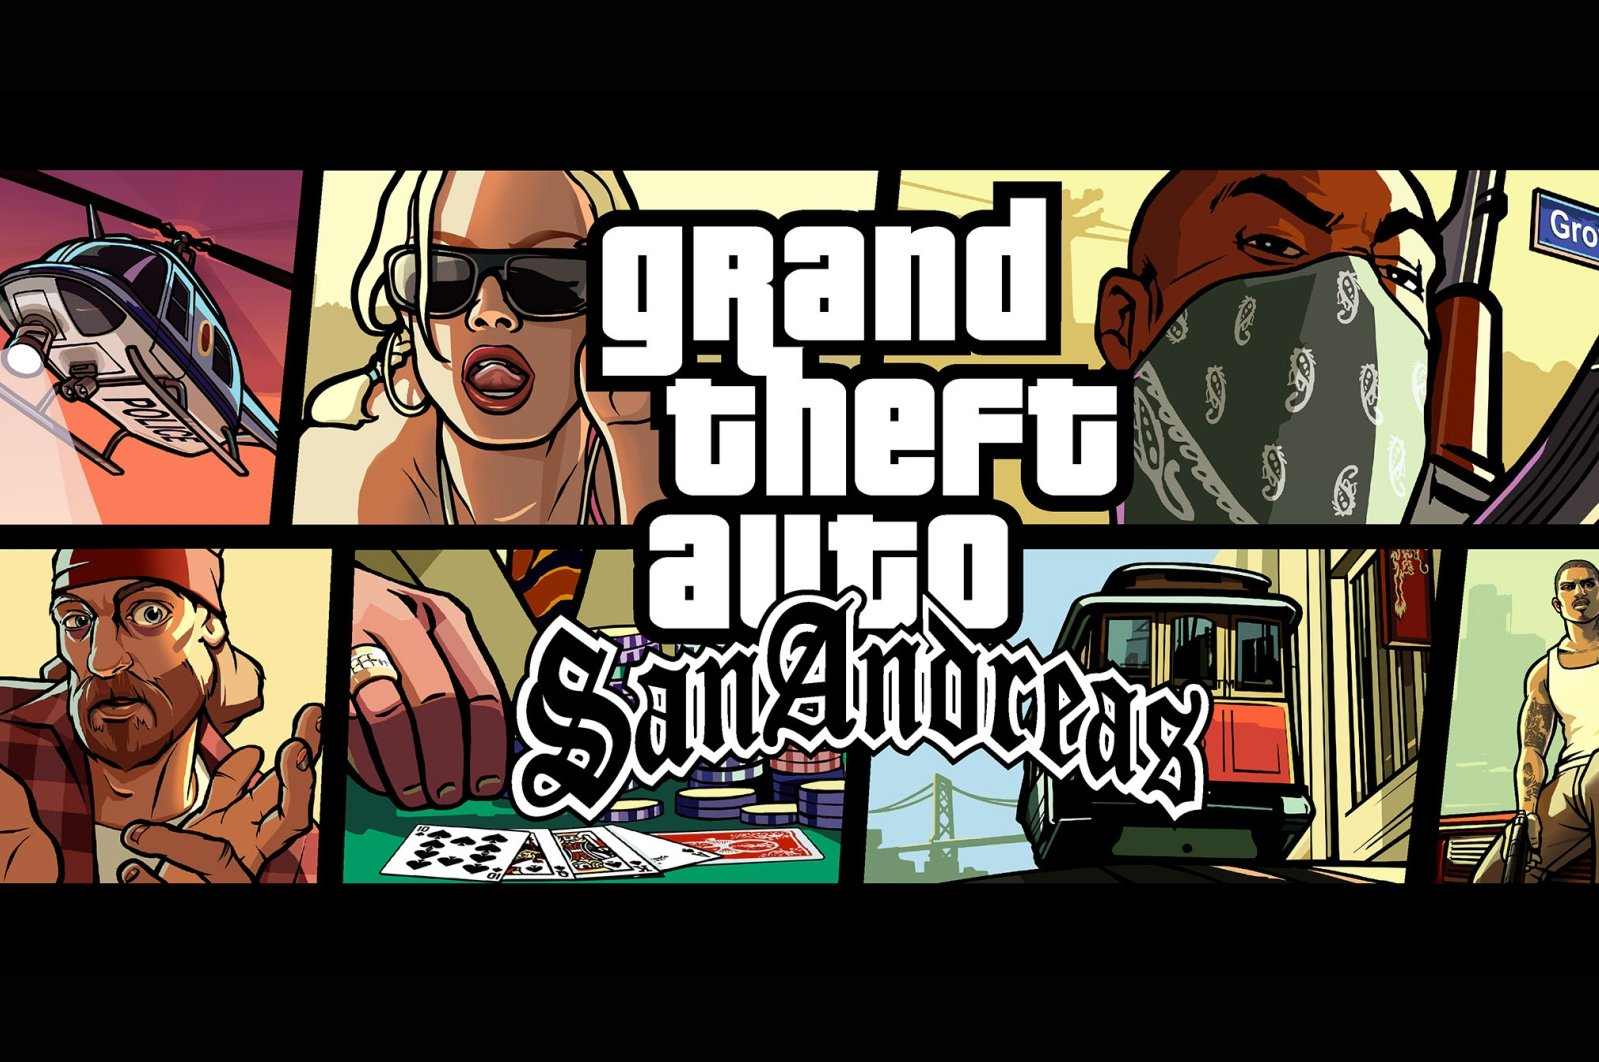 The official poster of the game GTA: San Andreas. (Courtesy of Rockstar Games)